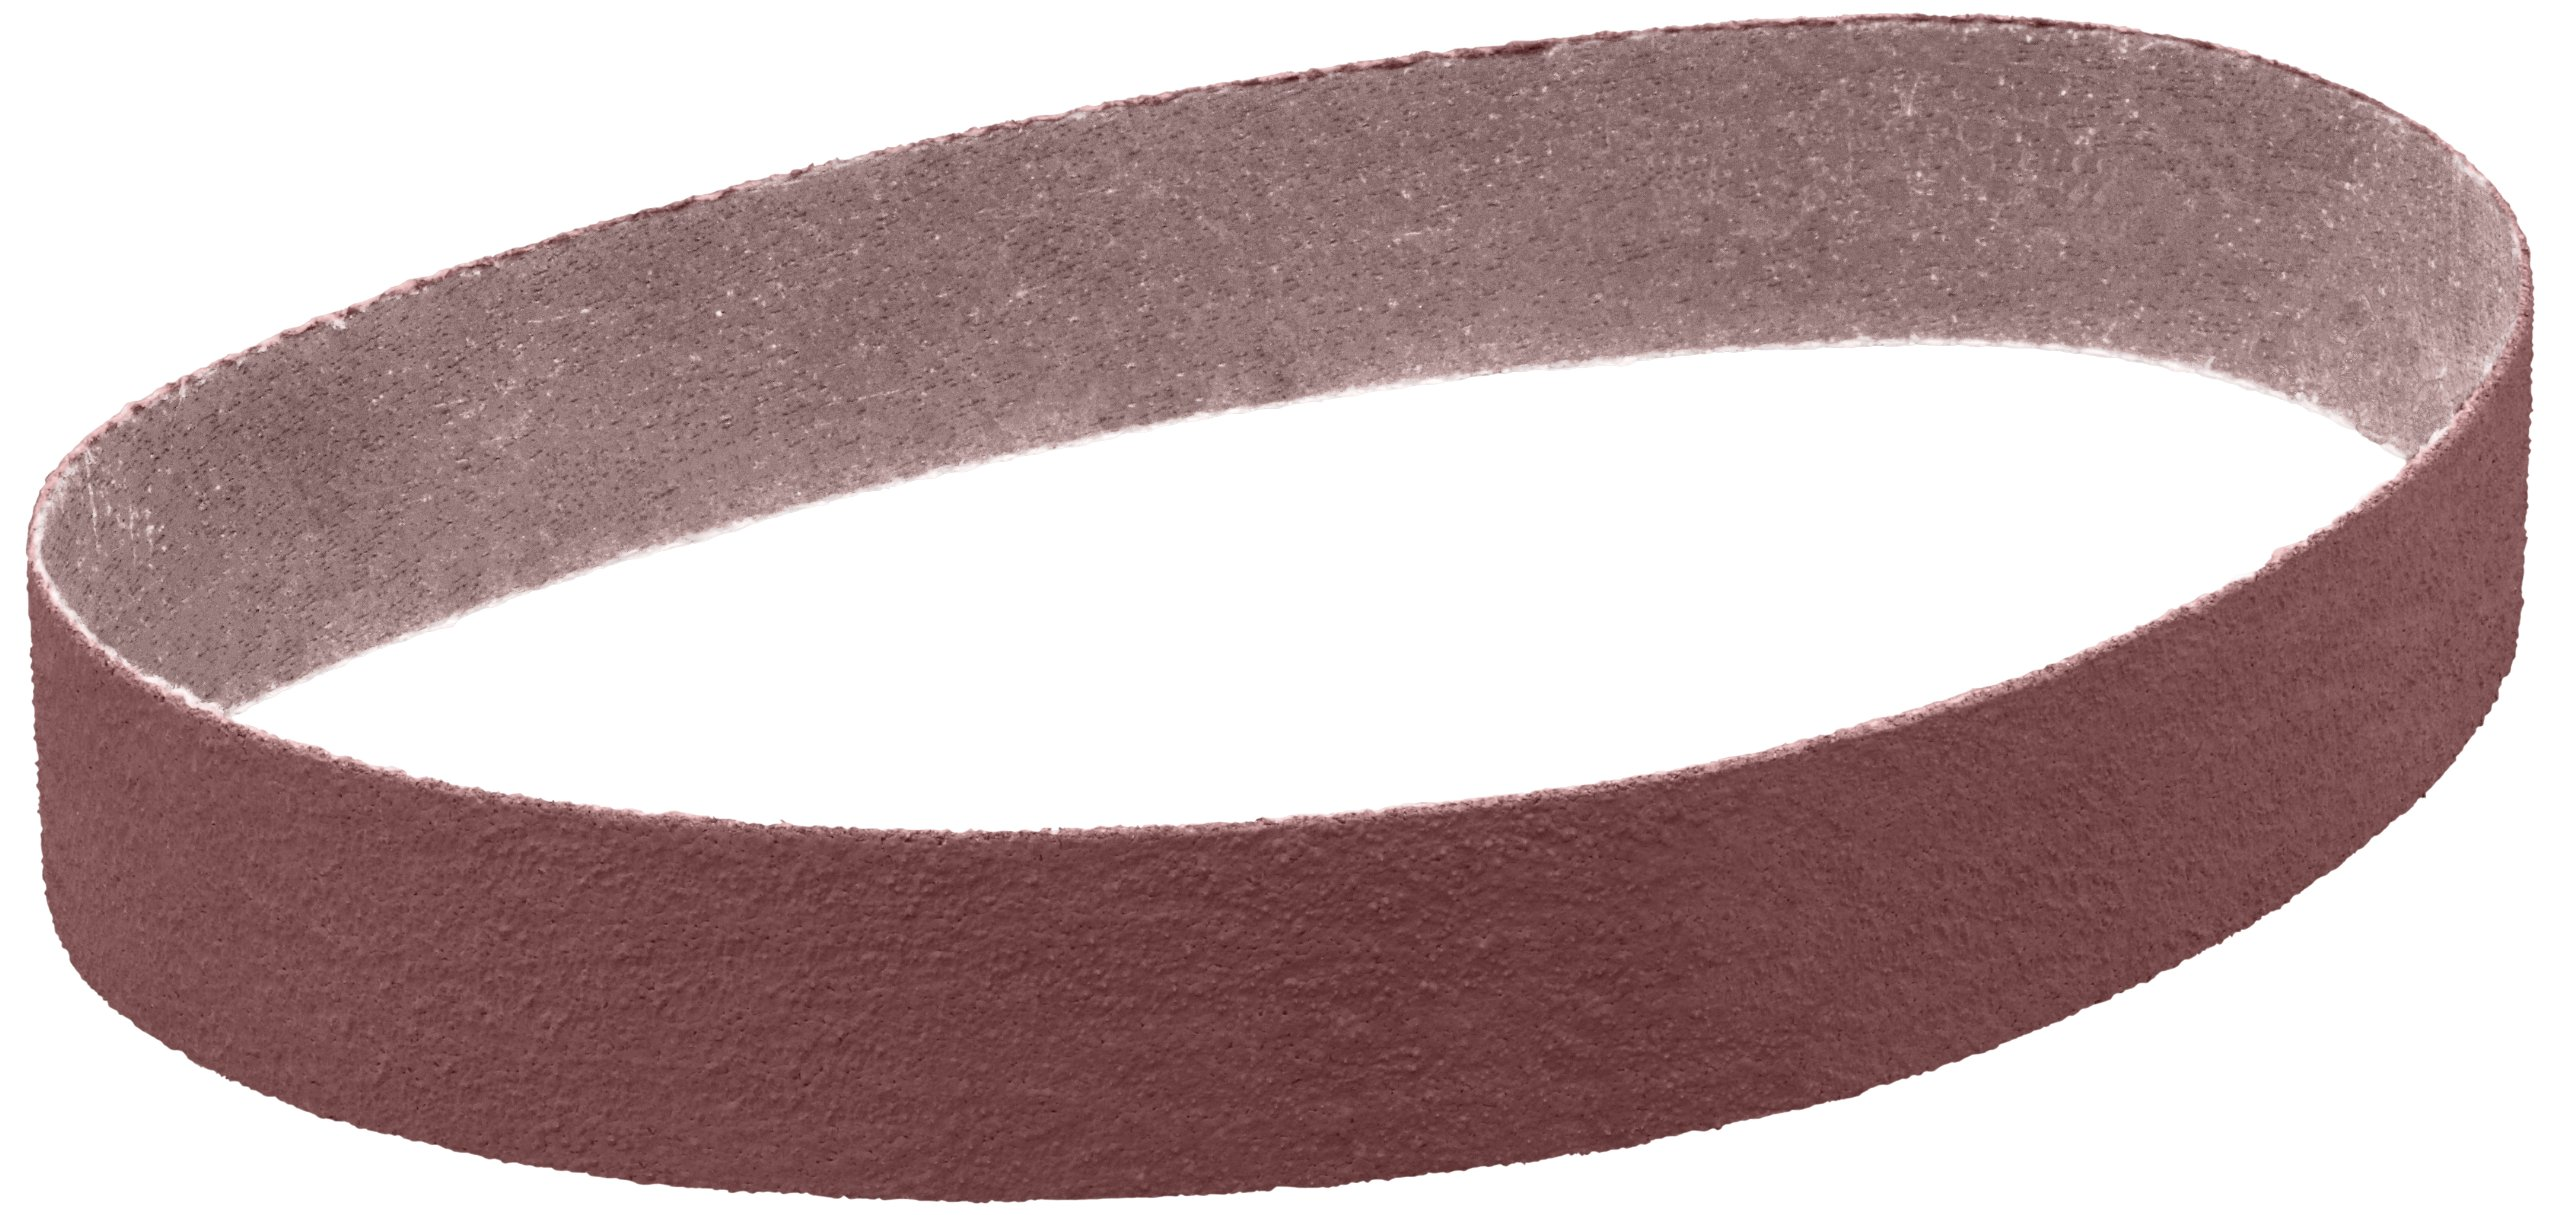 3M Cloth Belt 341D, Aluminum Oxide, 2'' Width x 48'' Length, 40 Grit (Pack of 50)